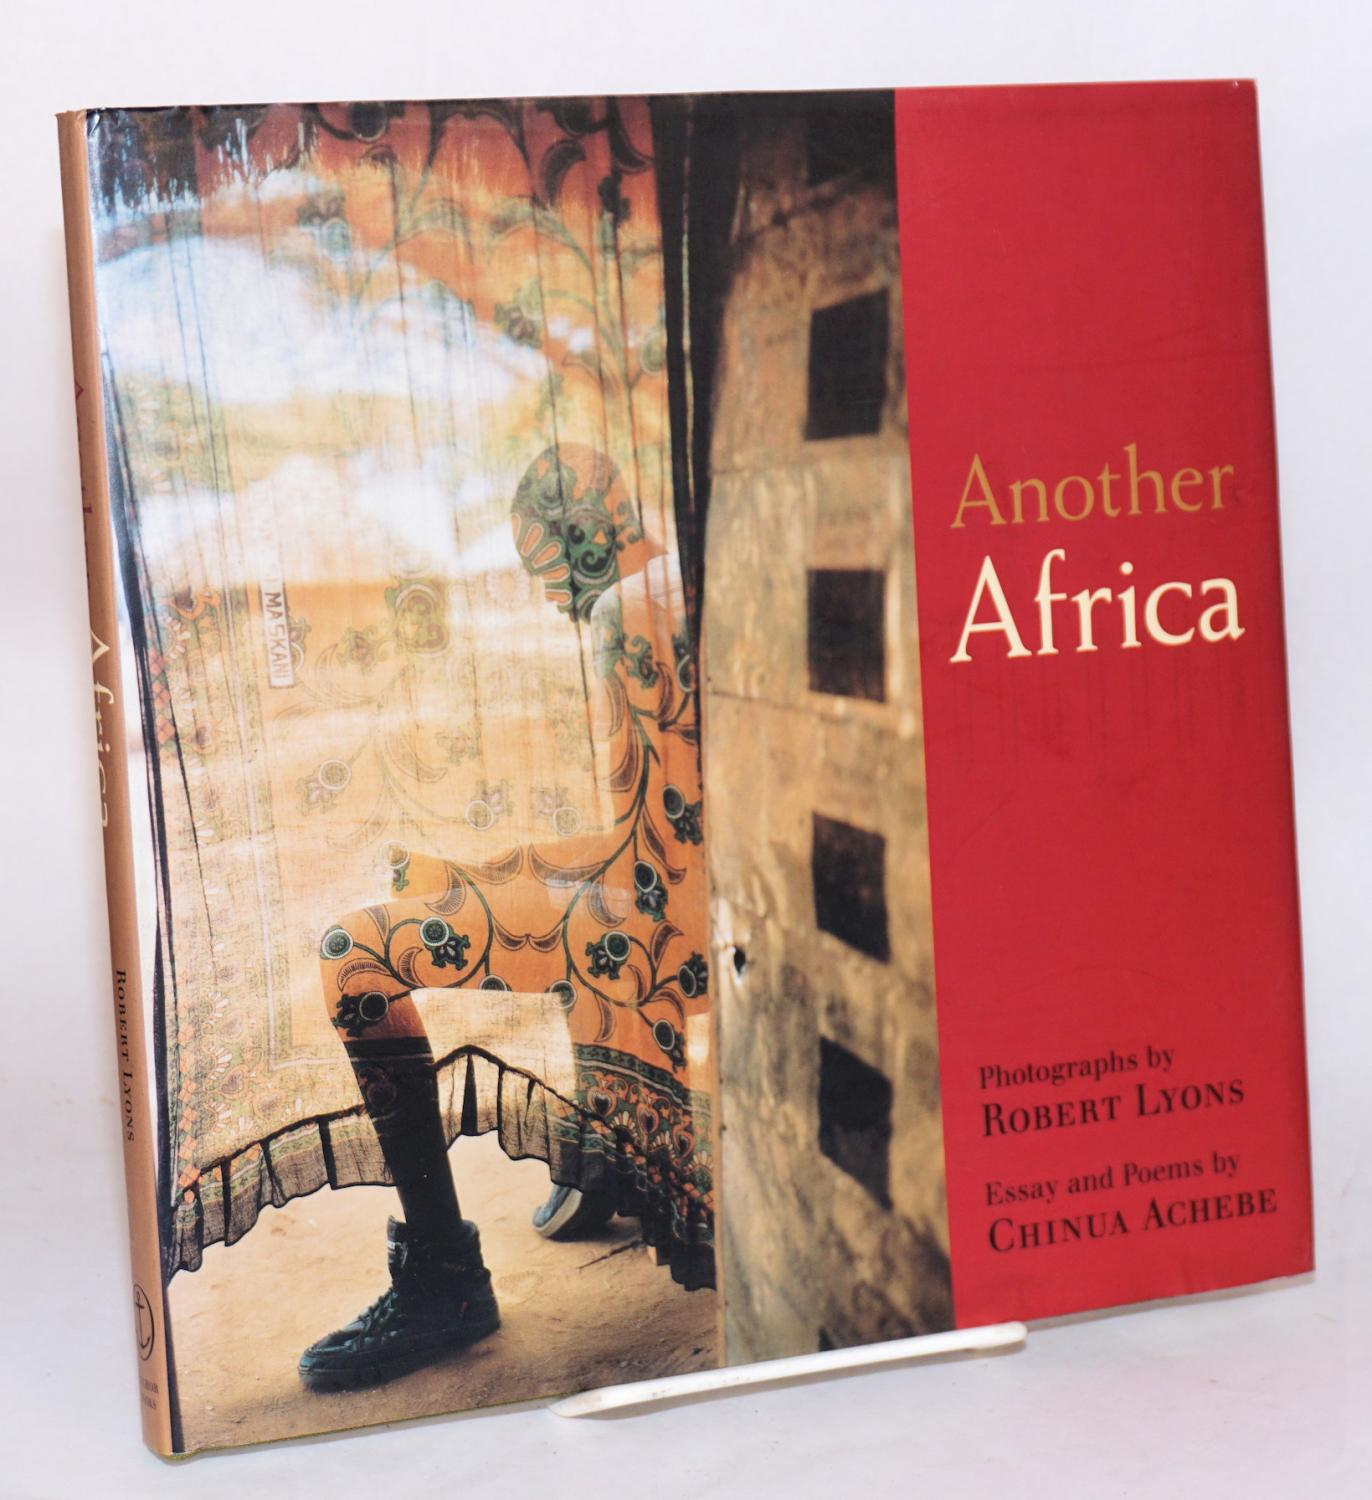 Mona Lisa Smile Essay Another Africa Lyons Robert Photography Chinua Achebe Essay And Poems Essays On Jealousy also Business Cycle Essay Another Africa By Lyons Robert Photography Chinua Achebe Essay  Essay On Community Service